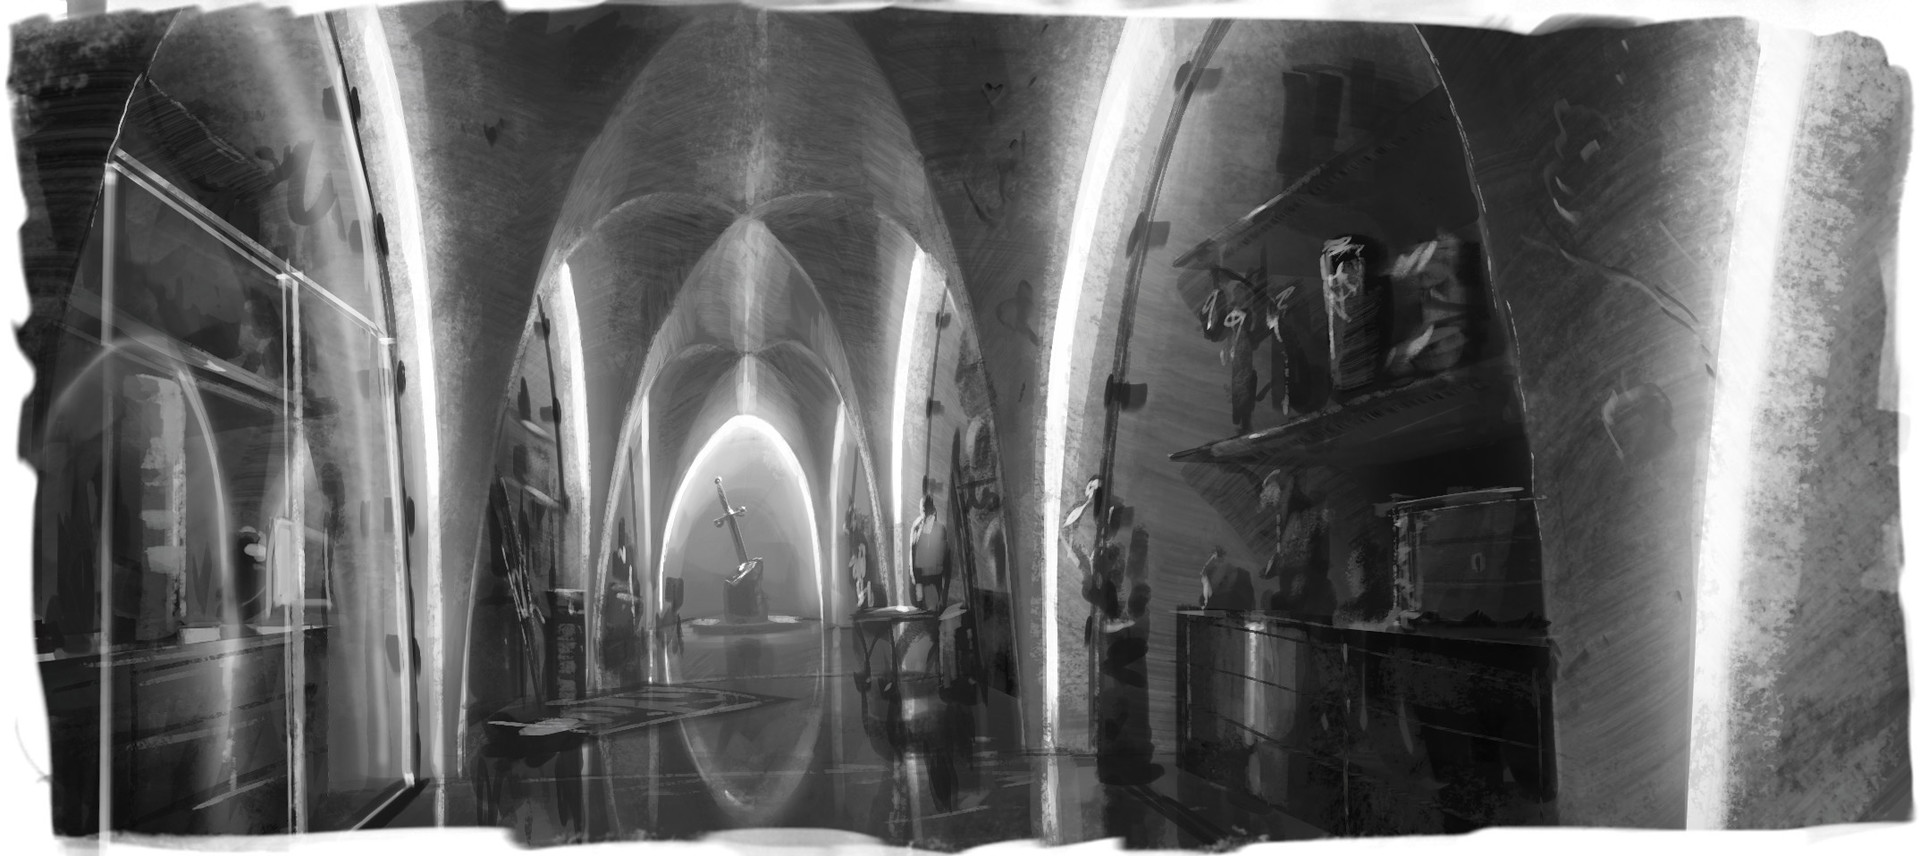 A sketch for the vault of precious and dangerous artifacts. Trying to combine the medieval with the modern.